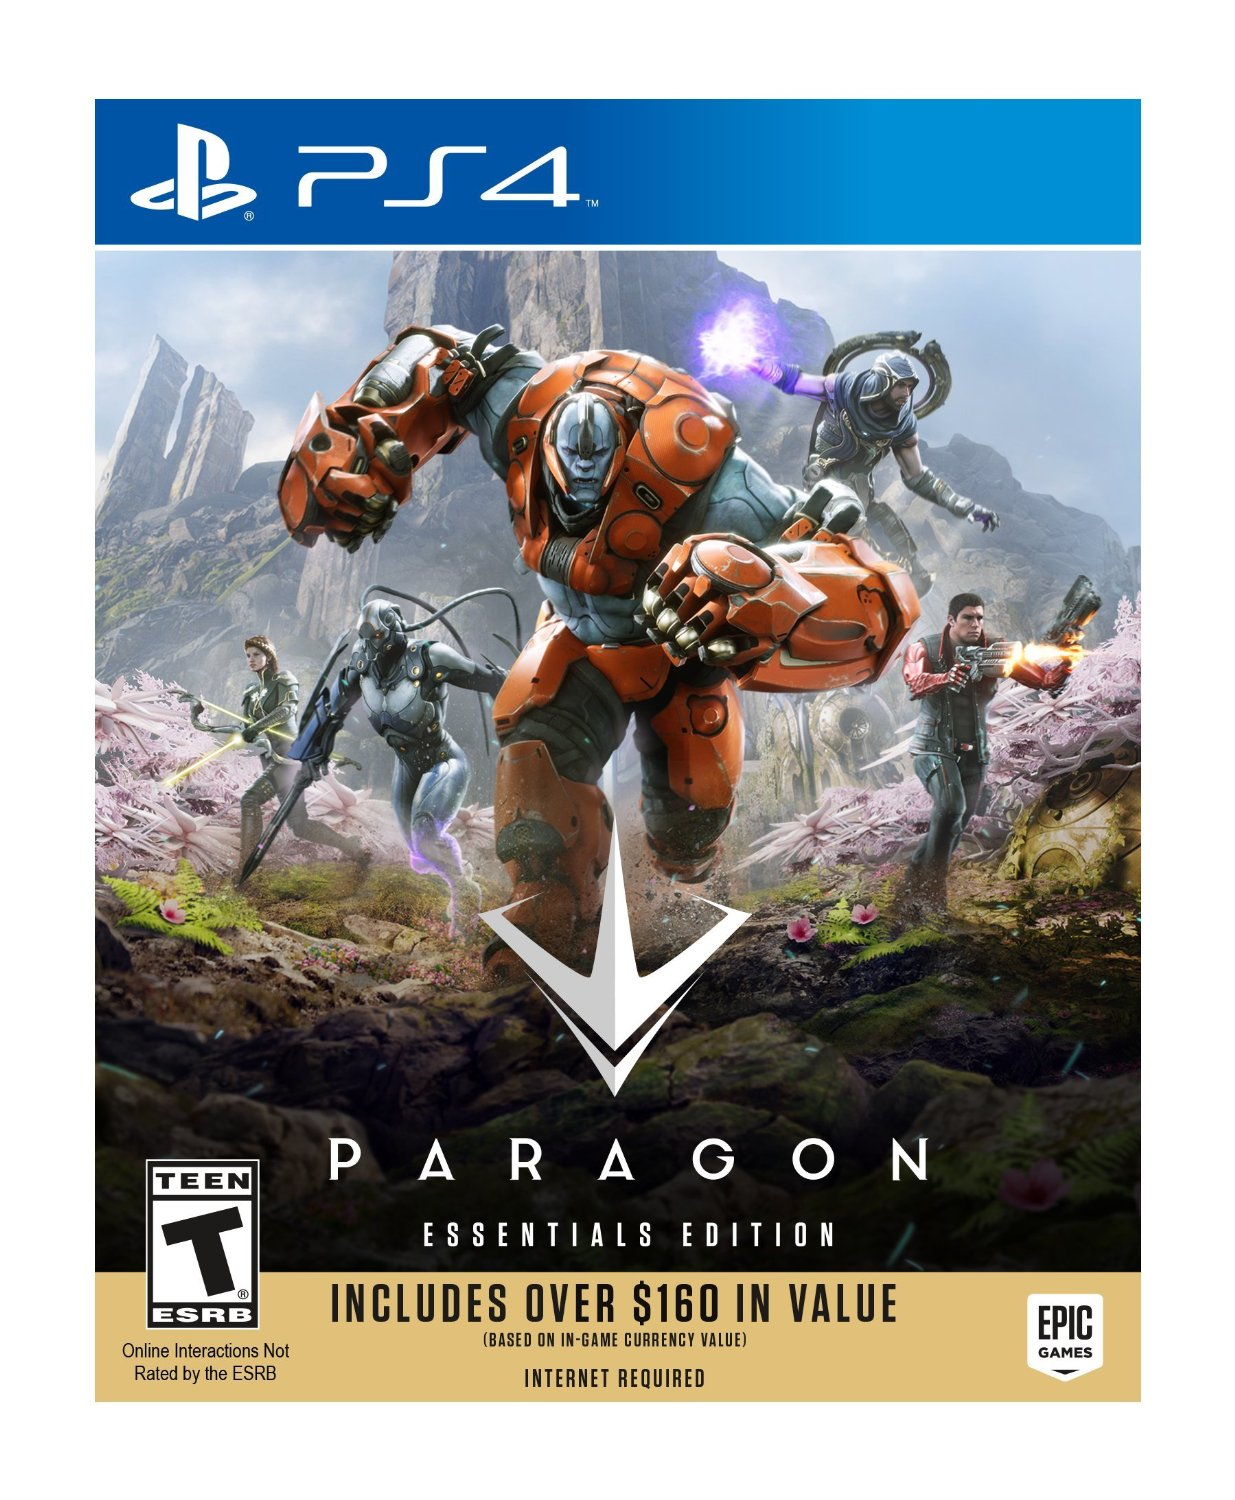 PS4 Paragon Essentials Edition (PlayStation 4)